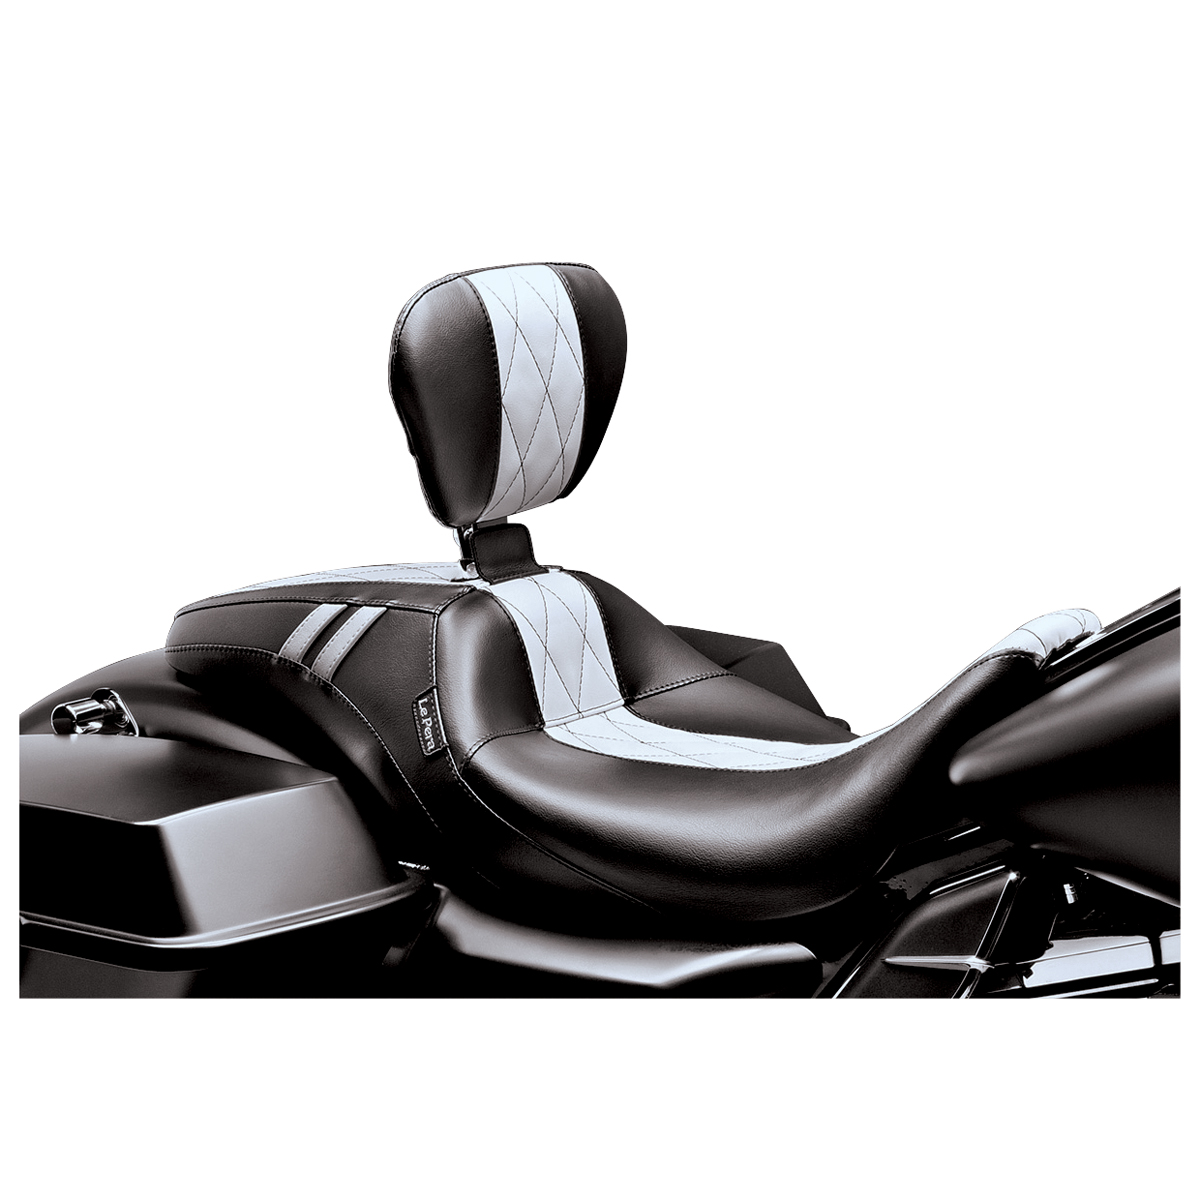 Le Pera White Diamond Outcast GT Seat with Driver Backrest